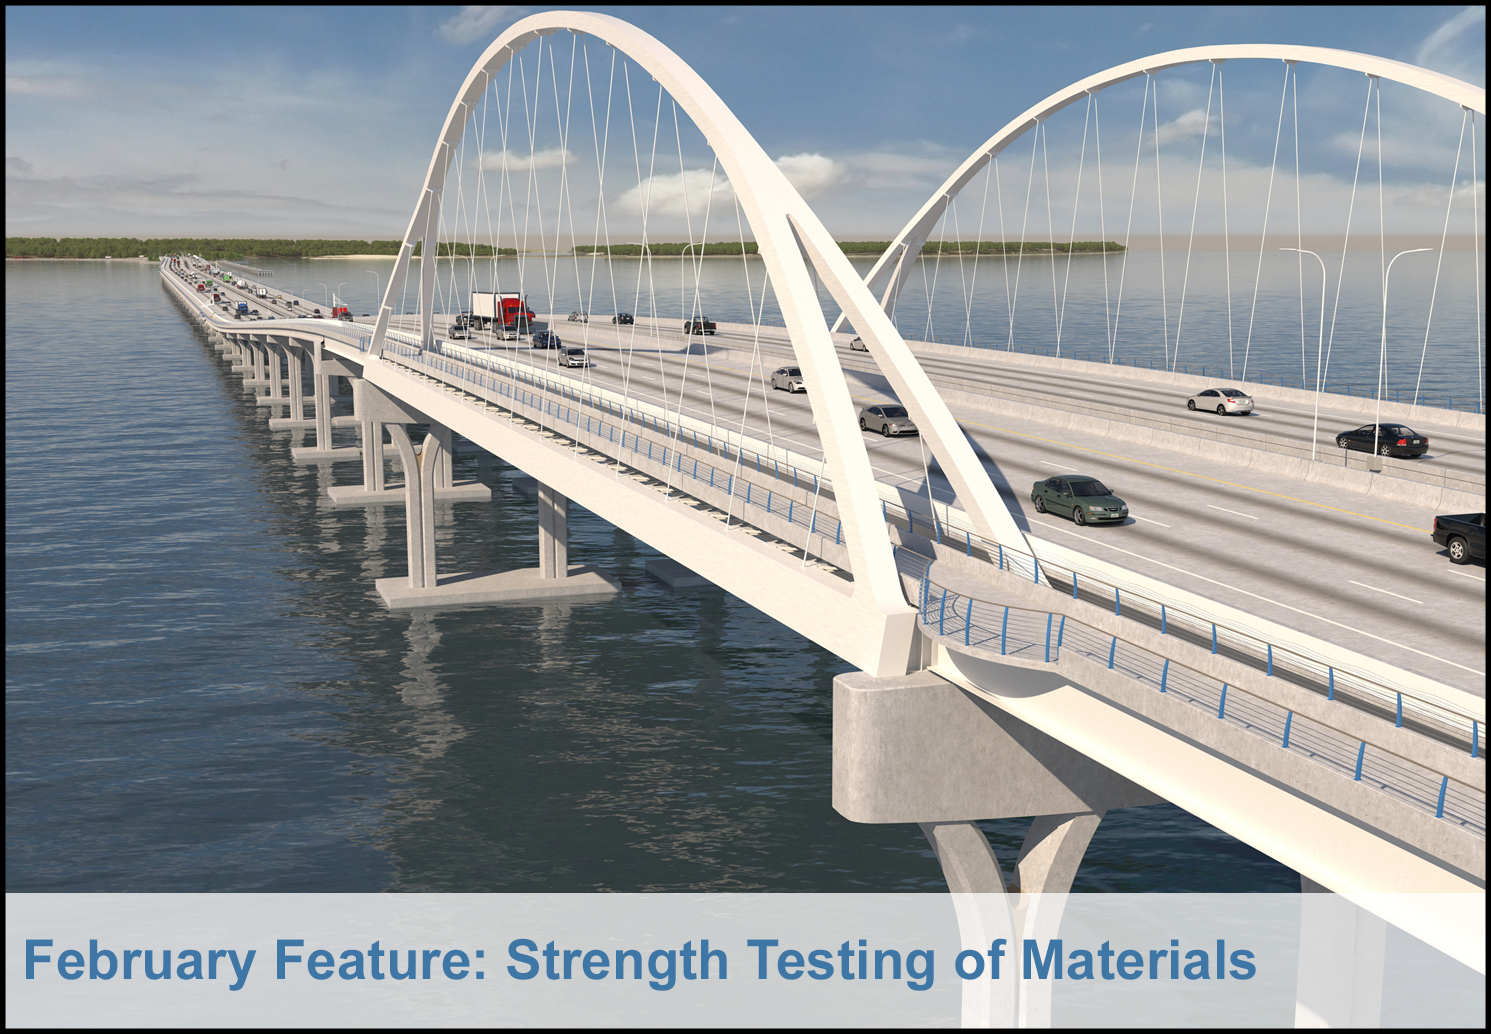 February Feature: Strength Testing of Materials